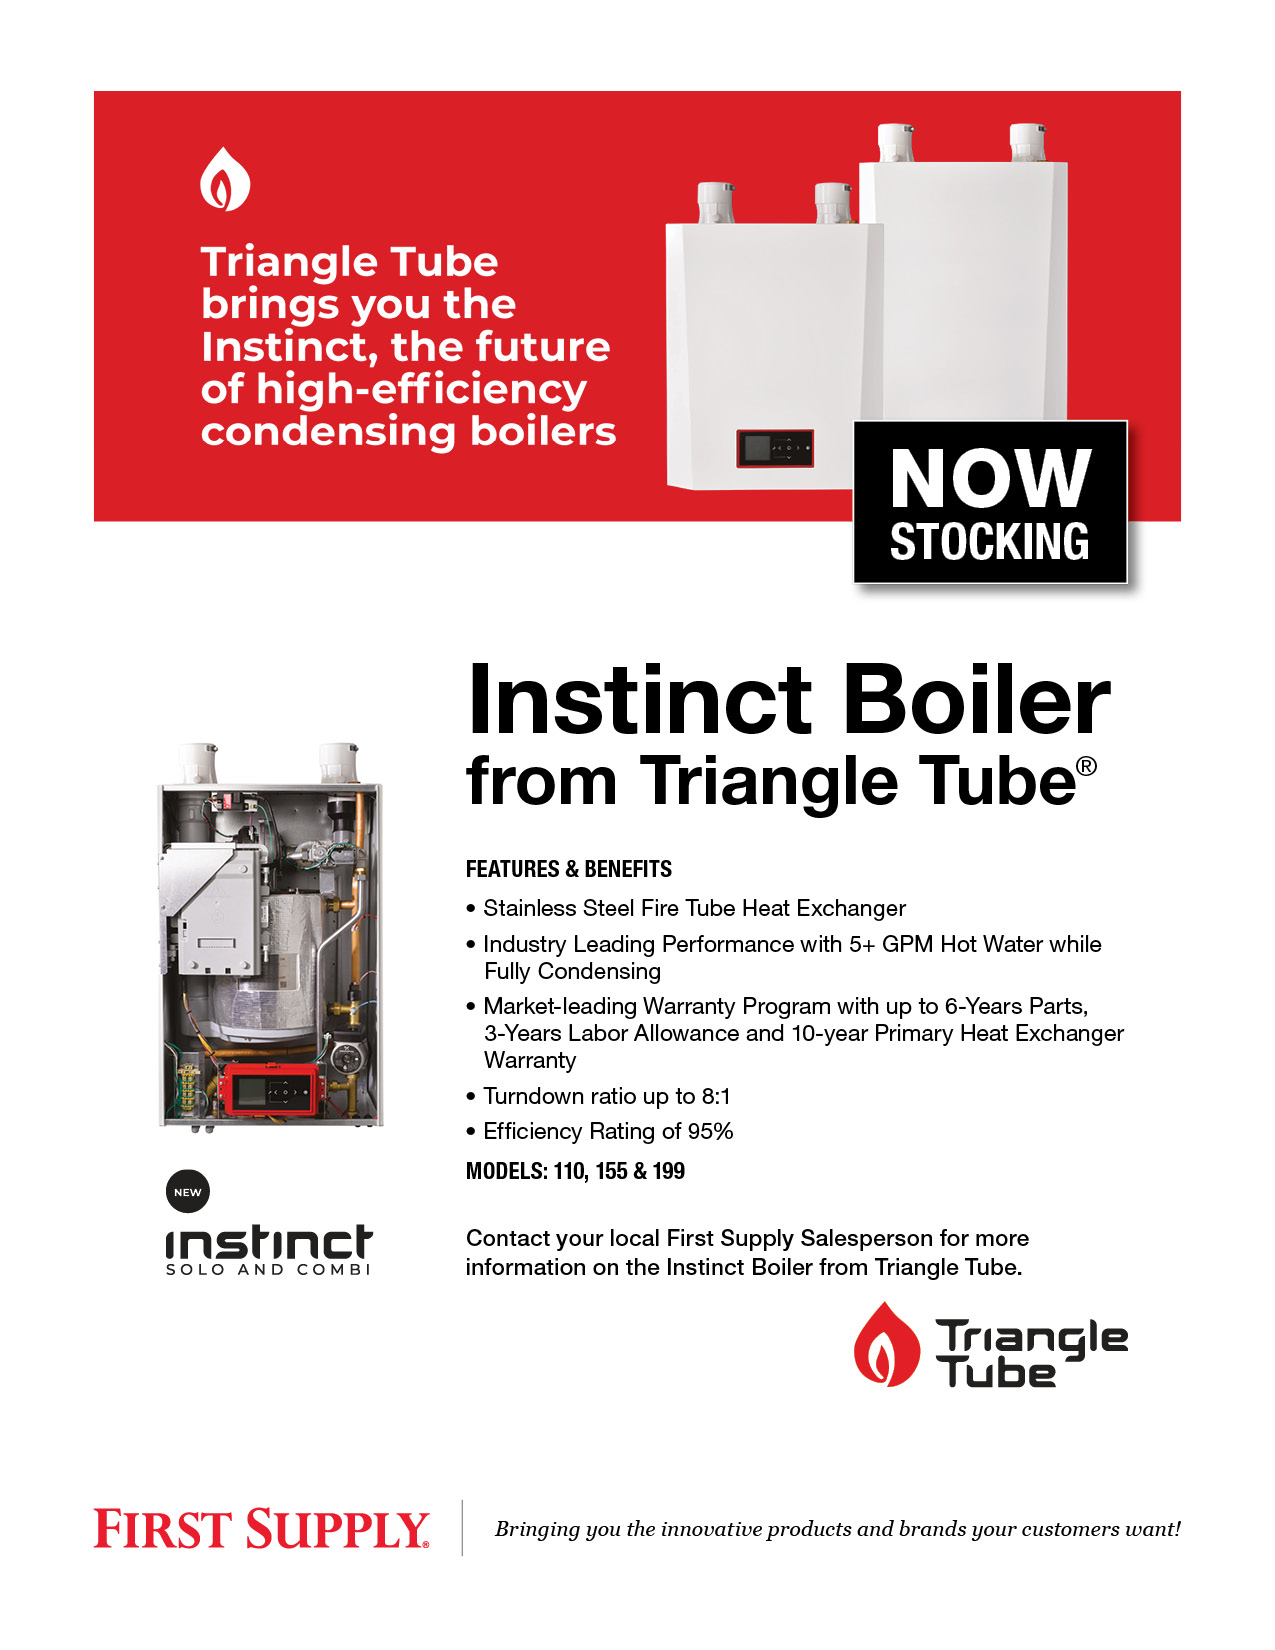 Instinct Boiler from Triangle Tube